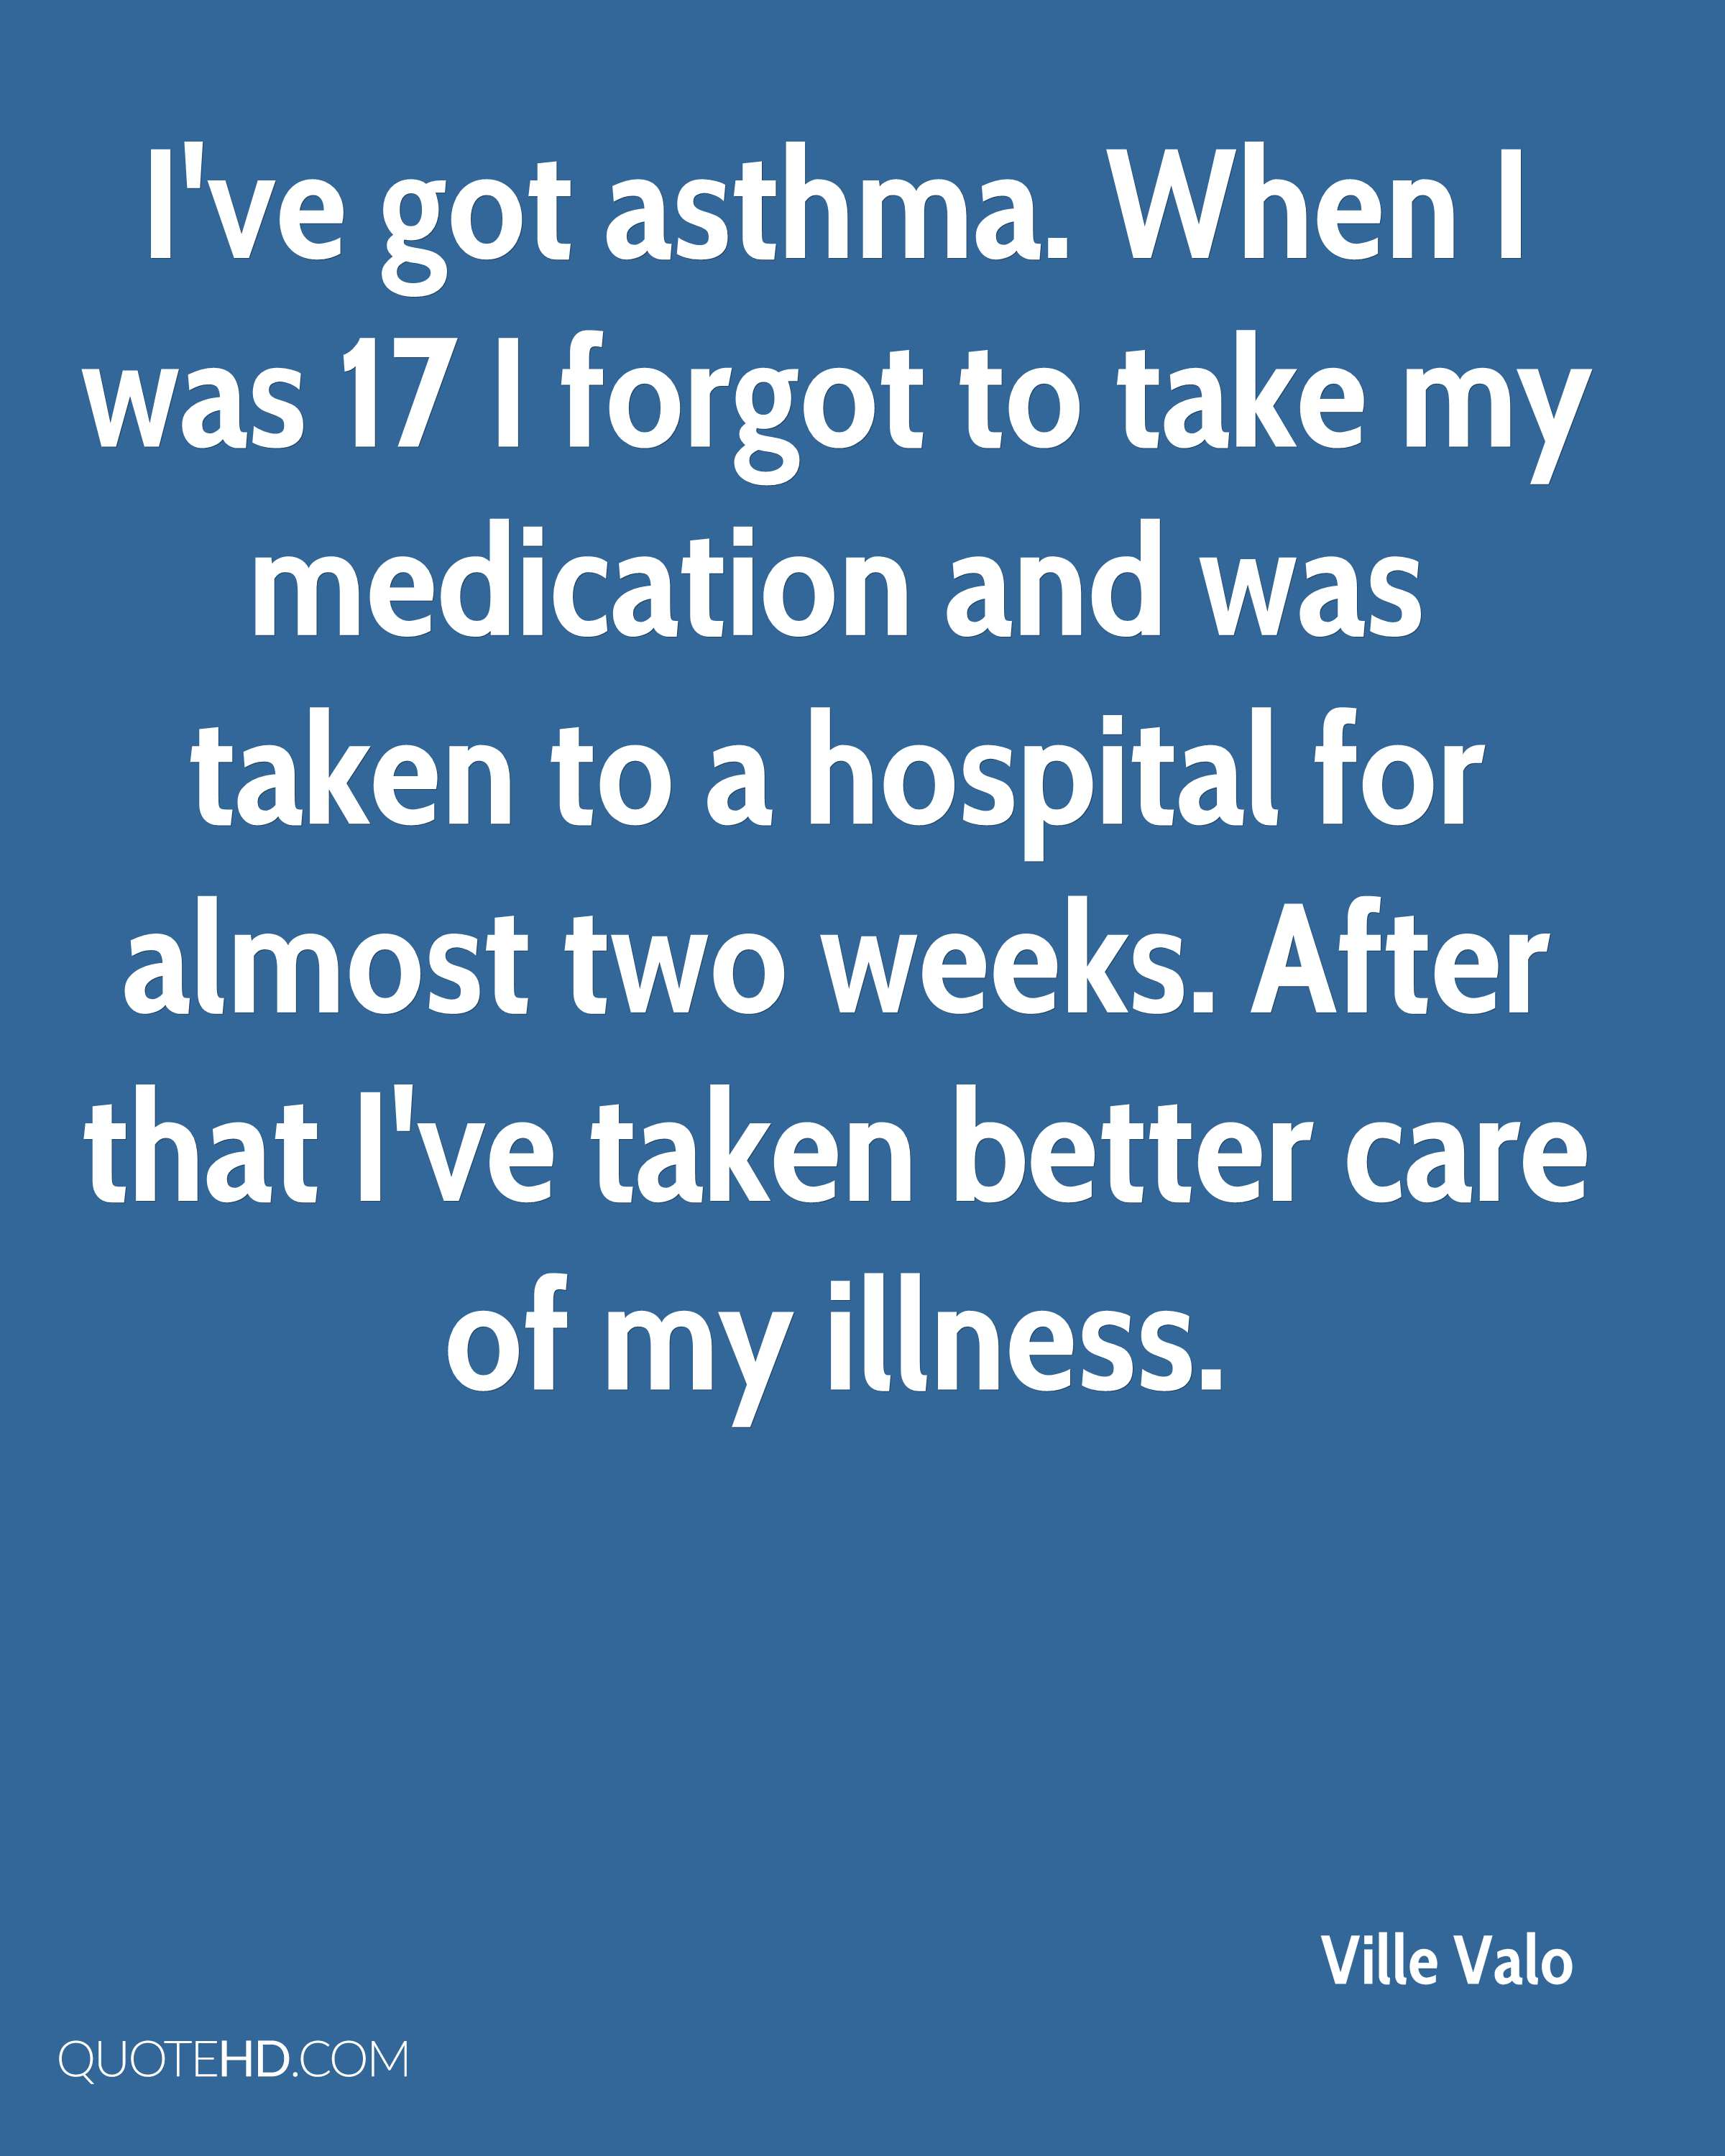 I've got asthma. When I was 17 I forgot to take my medication and was taken to a hospital for almost two weeks. After that I've taken better care of my illness.